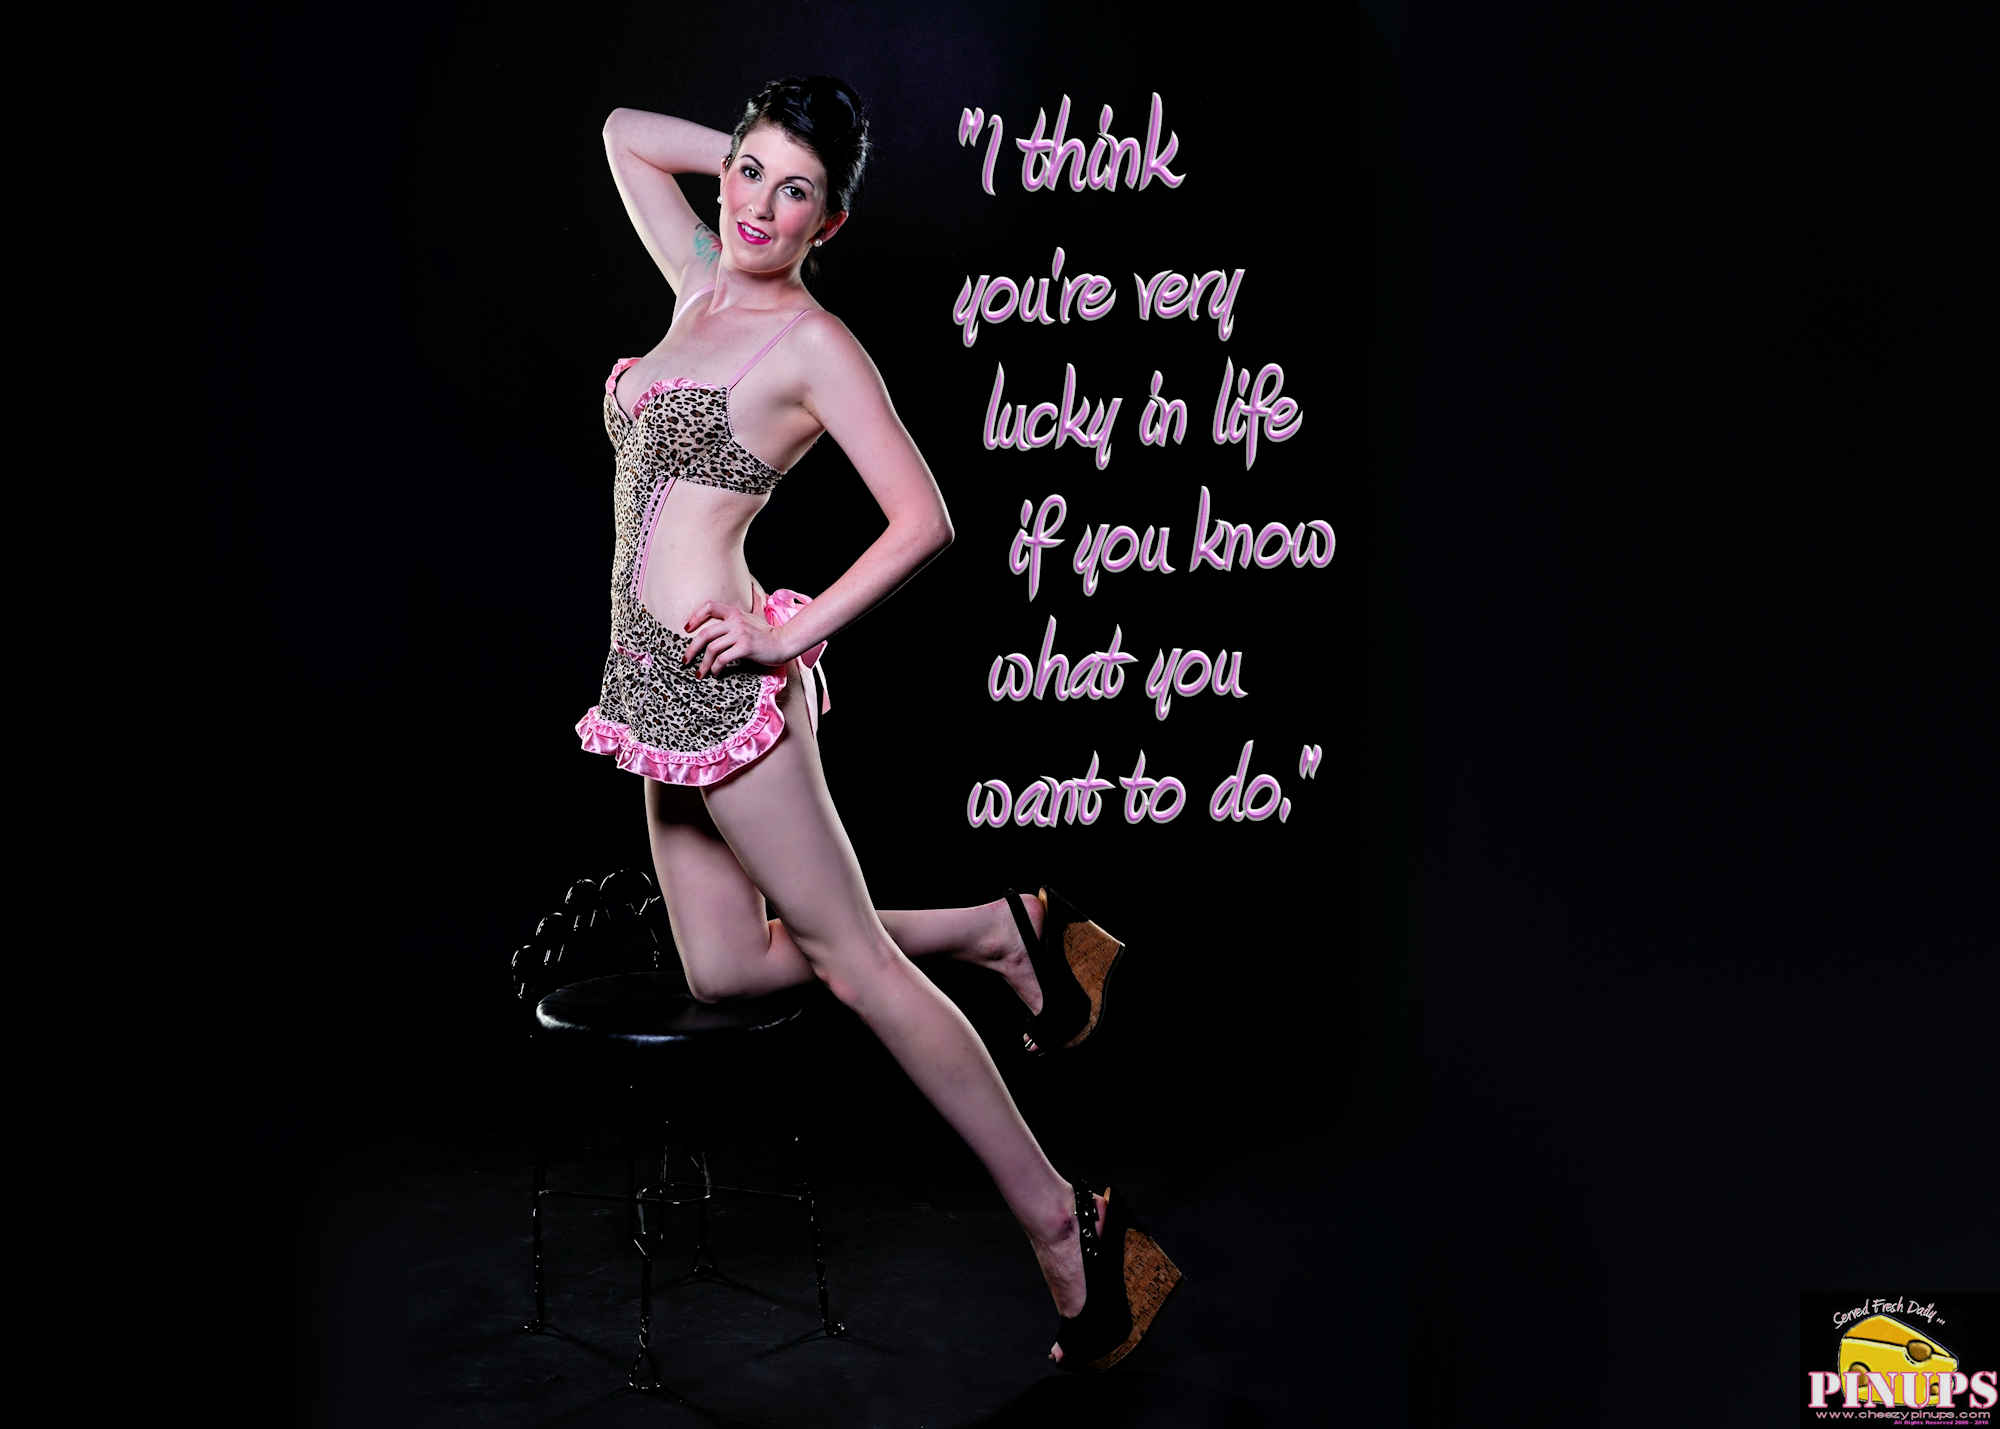 "Cheezy Pinup - March 22, 2018   ""I think you're very lucky in life if you know what you want to do."" - Andrew Lloyd Webber Model: Carrie"